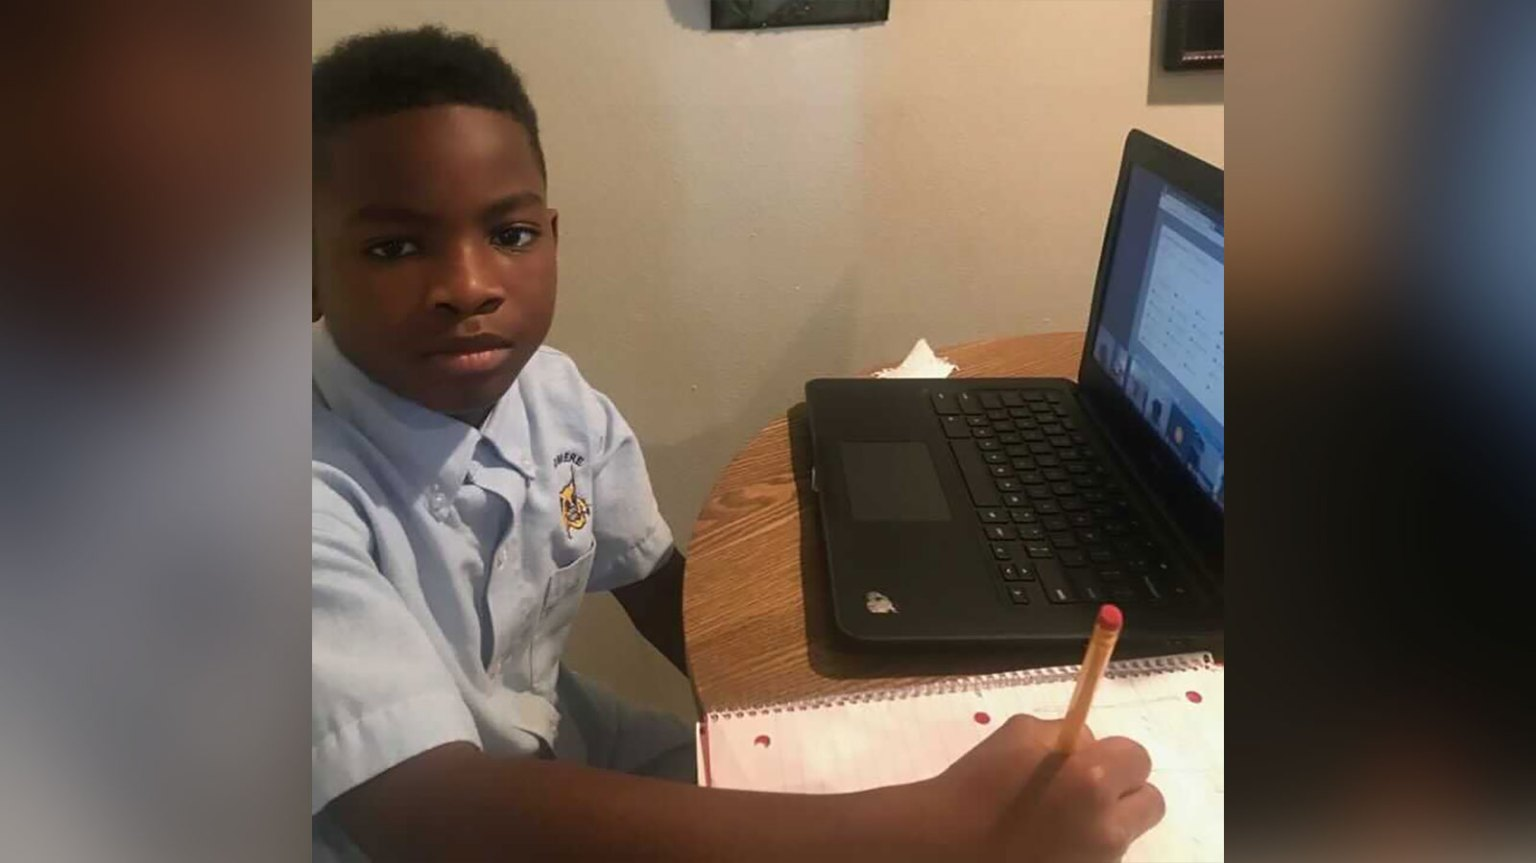 4th grader suspended for having a BB gun in his bedroom during virtual learning